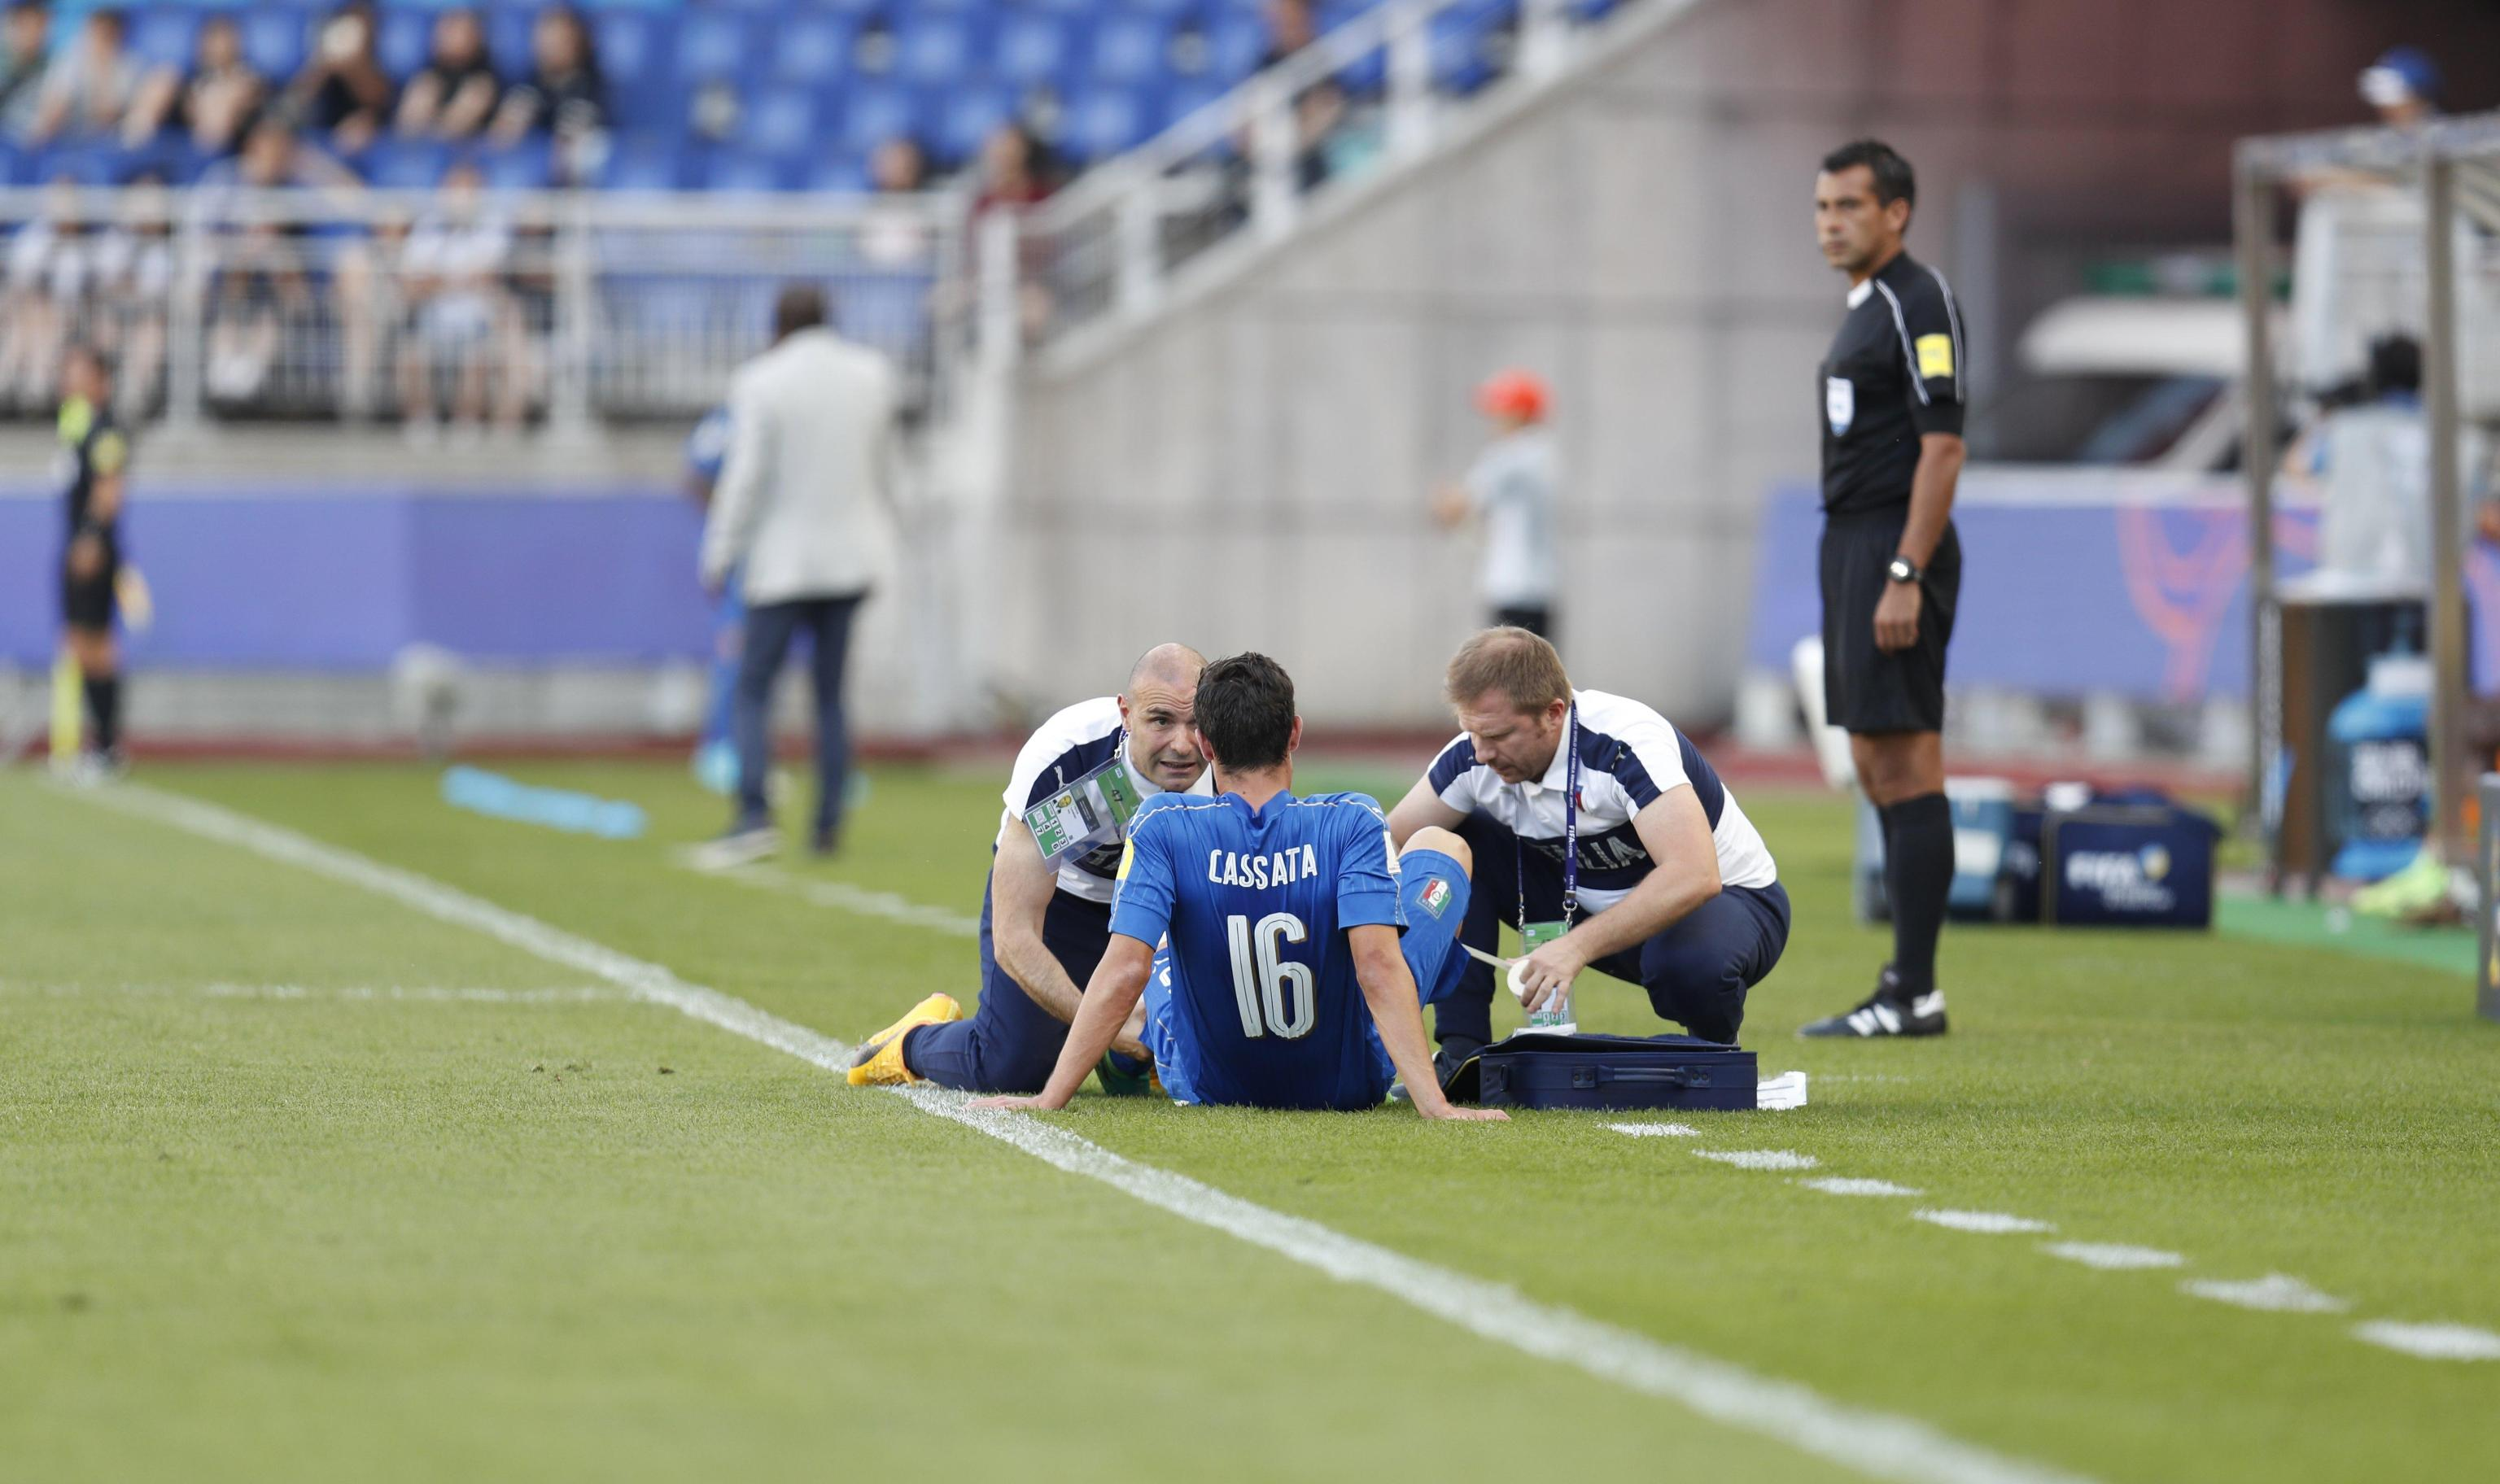 epa06011406 Francesco Cassata of Italy receives medical treatment as he is injured during the quarterfinal match of the FIFA U-20 World Cup 2017 between Italy and Zambia in Suwon World Cup Stadium, South Korea, 05 June 2017. EPA/JEON HEON-KYUN